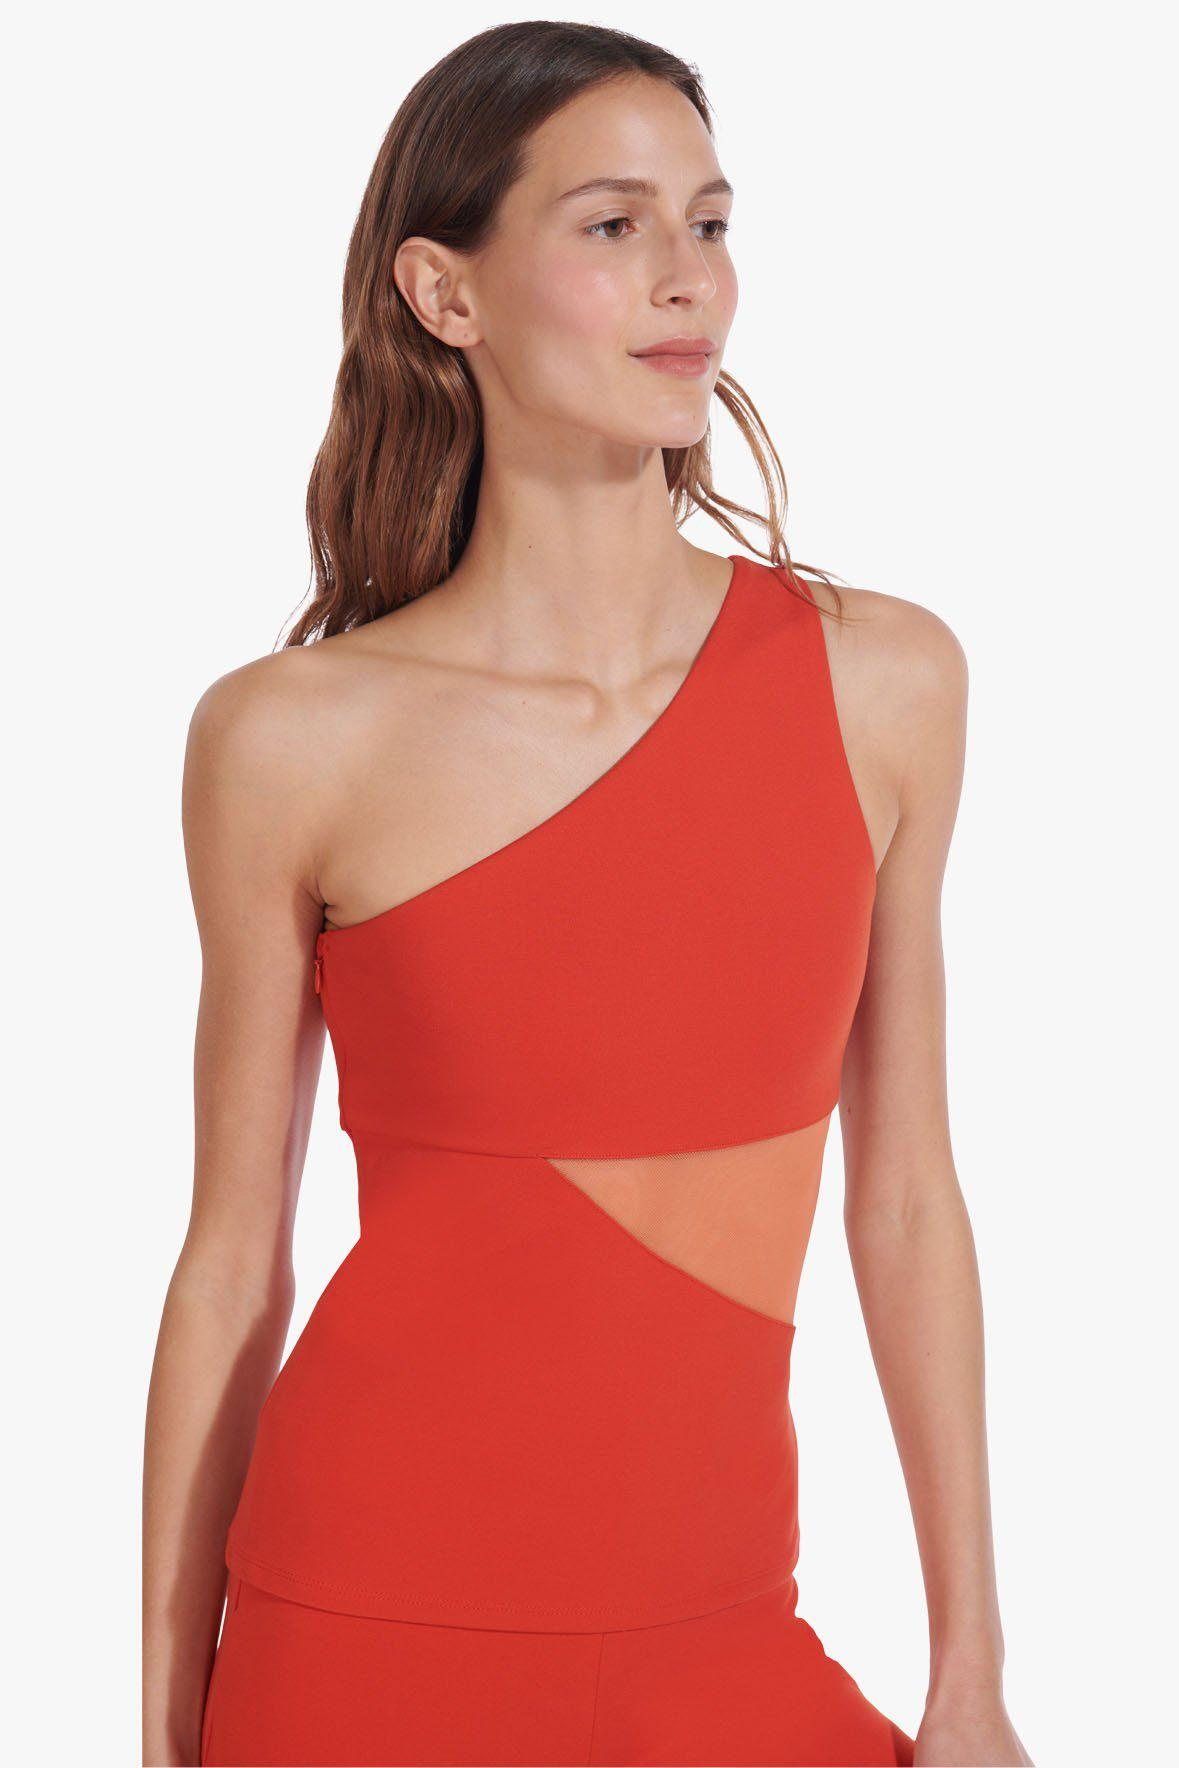 AETHER TOP | FIERY RED NECTARINE